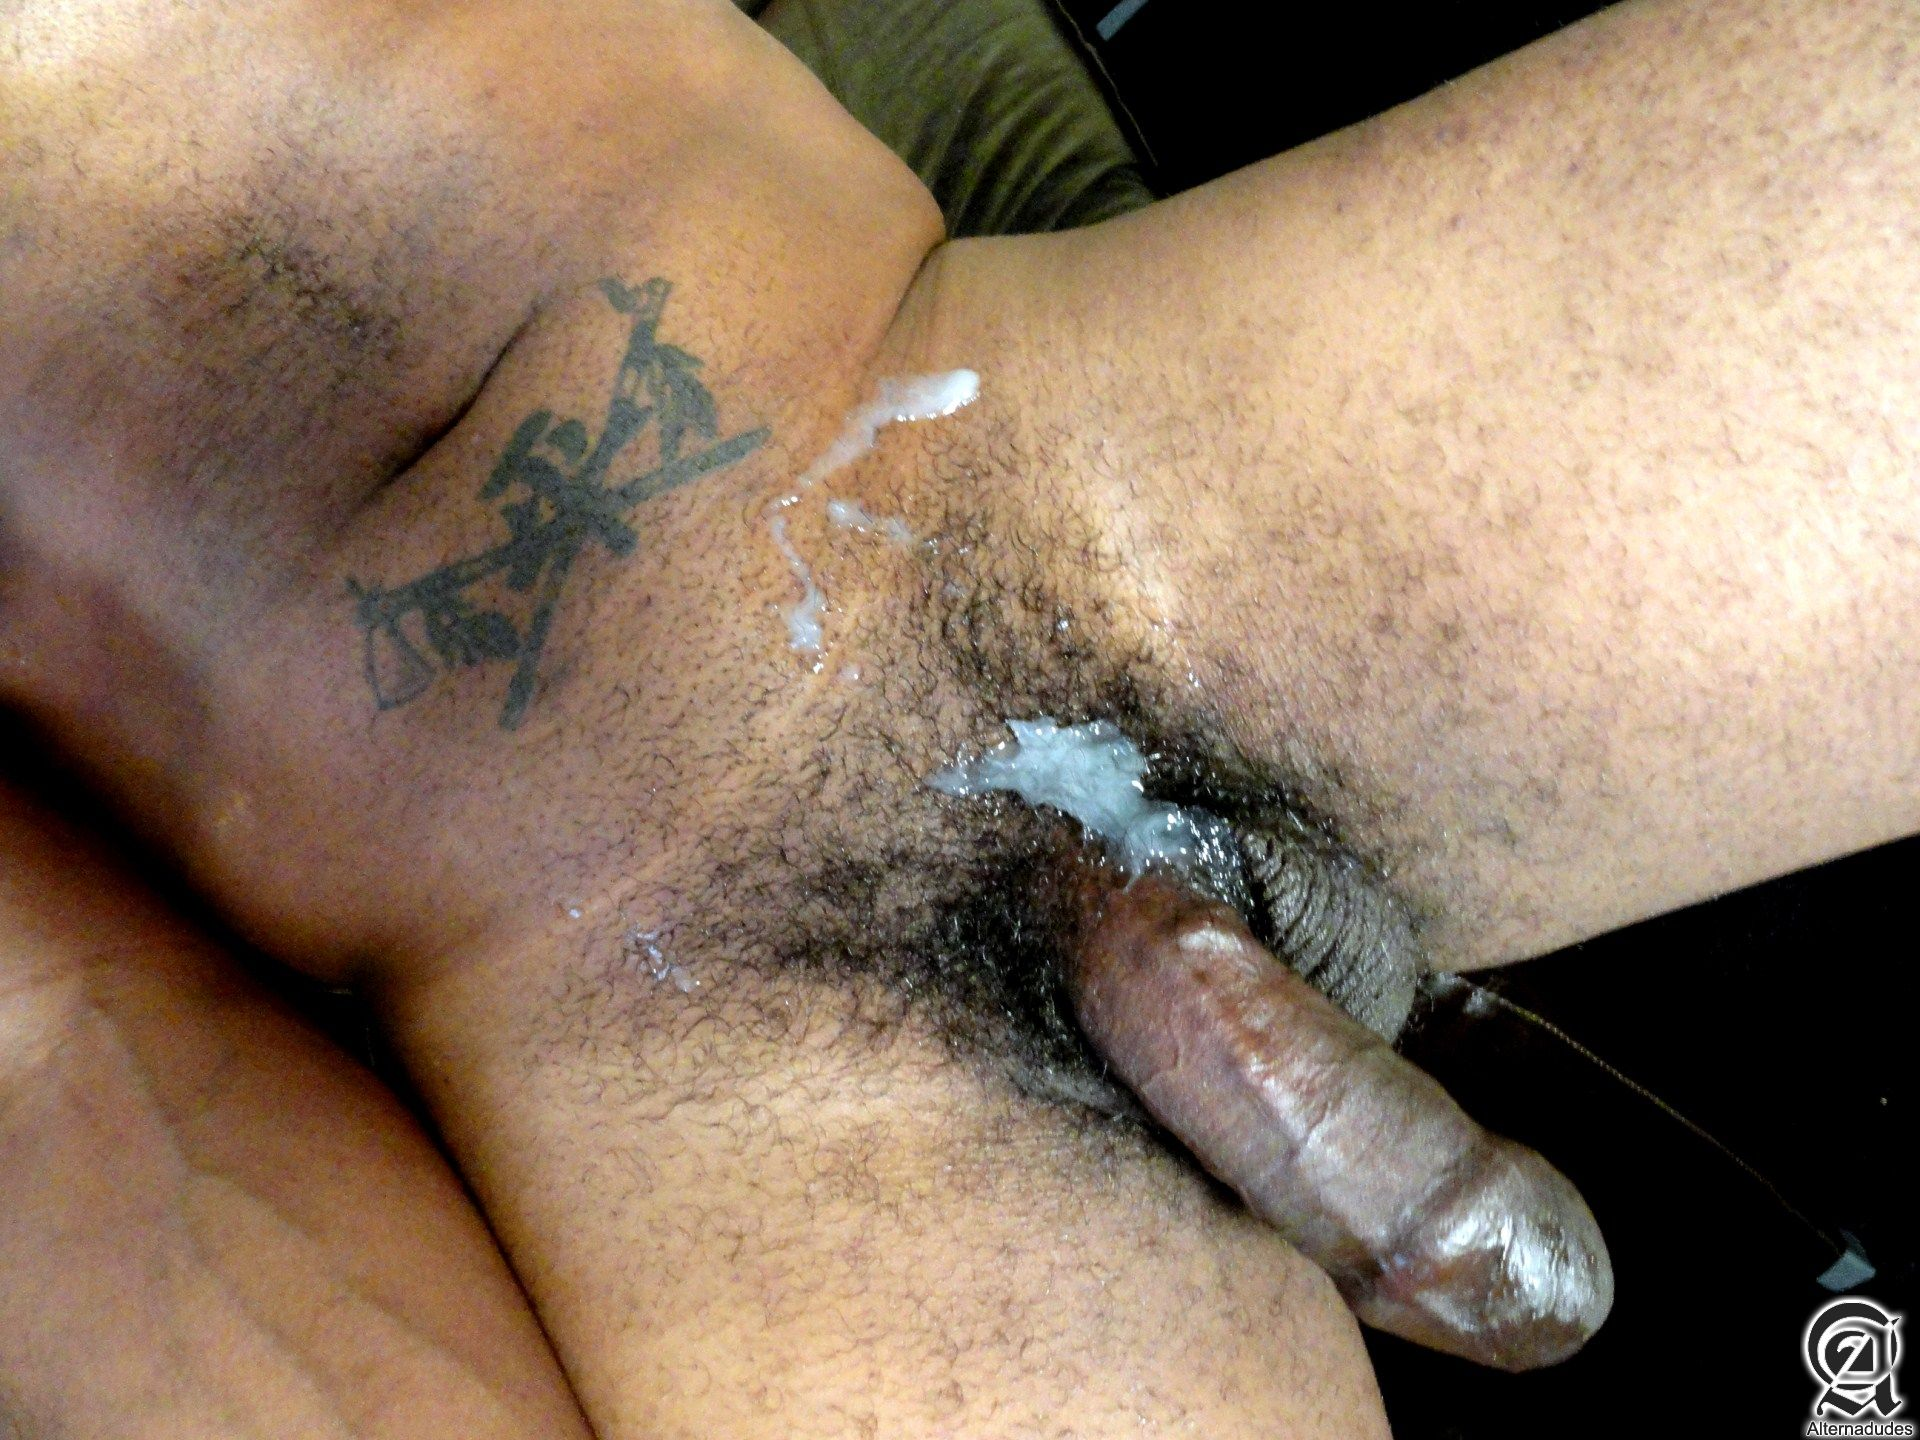 Alternadudes-Kamrun-big-black-uncut-cock-with-cum-13 Sexy Amateur Black Hipster with a Huge Uncut Black Cock Shoots A Load